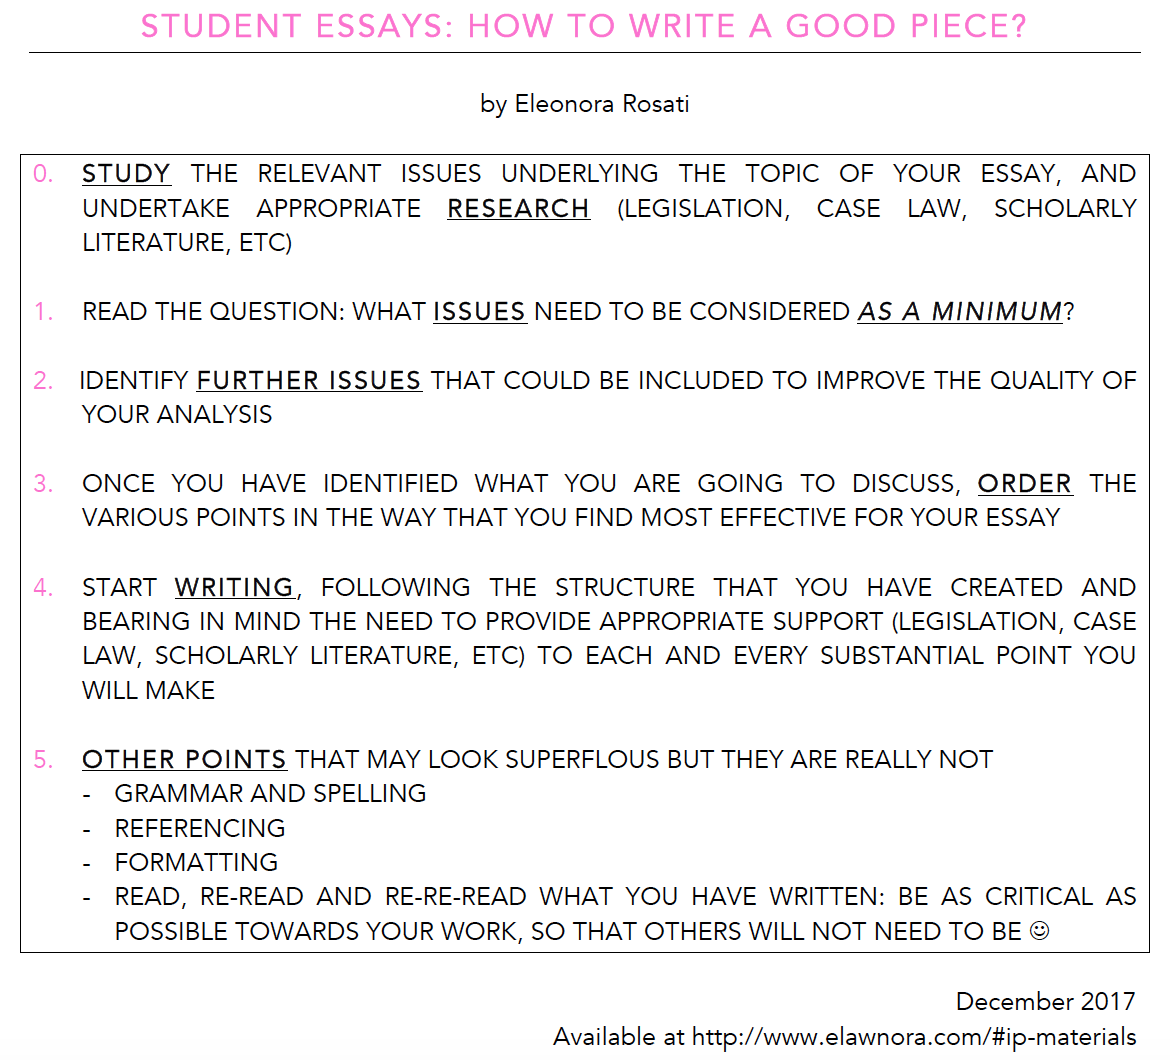 How to write a good application essay in an exam